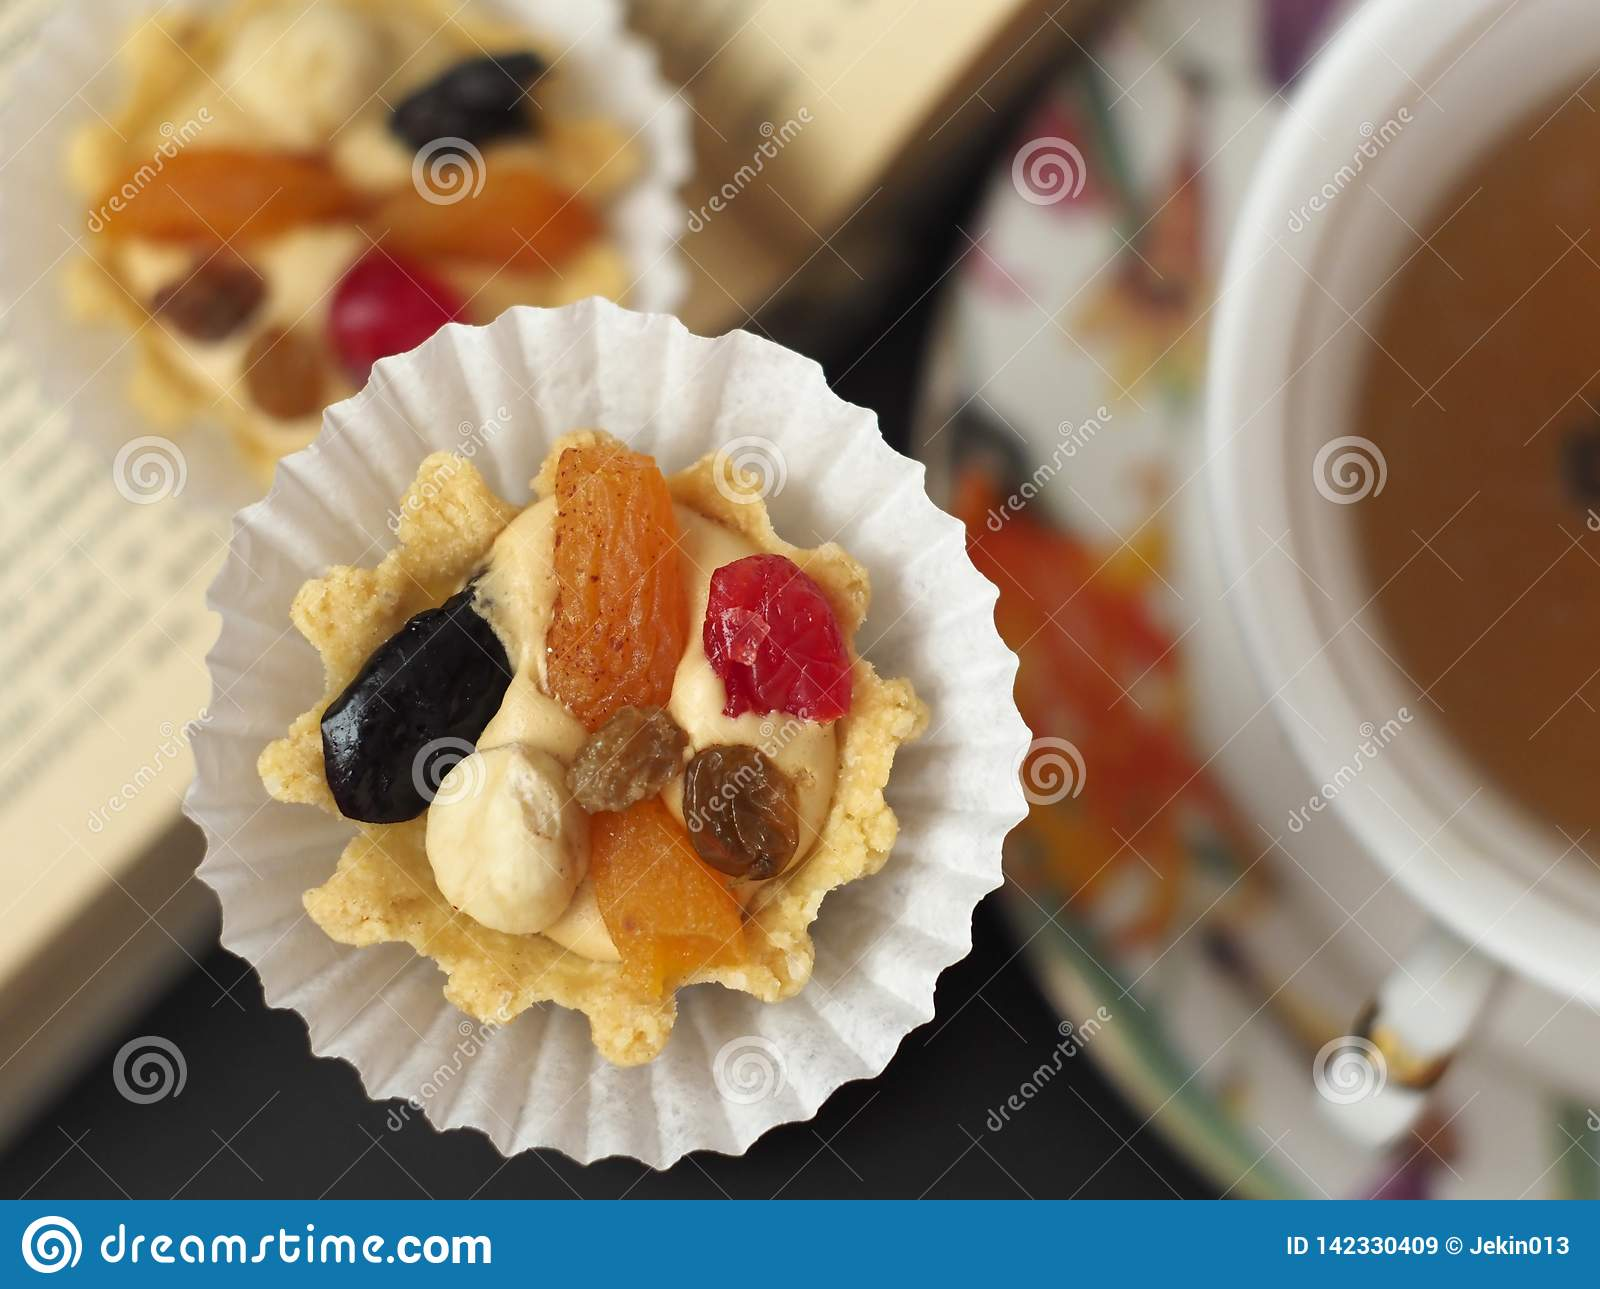 Two cakes with butter cream and fruit near a cup of tea at the opened book